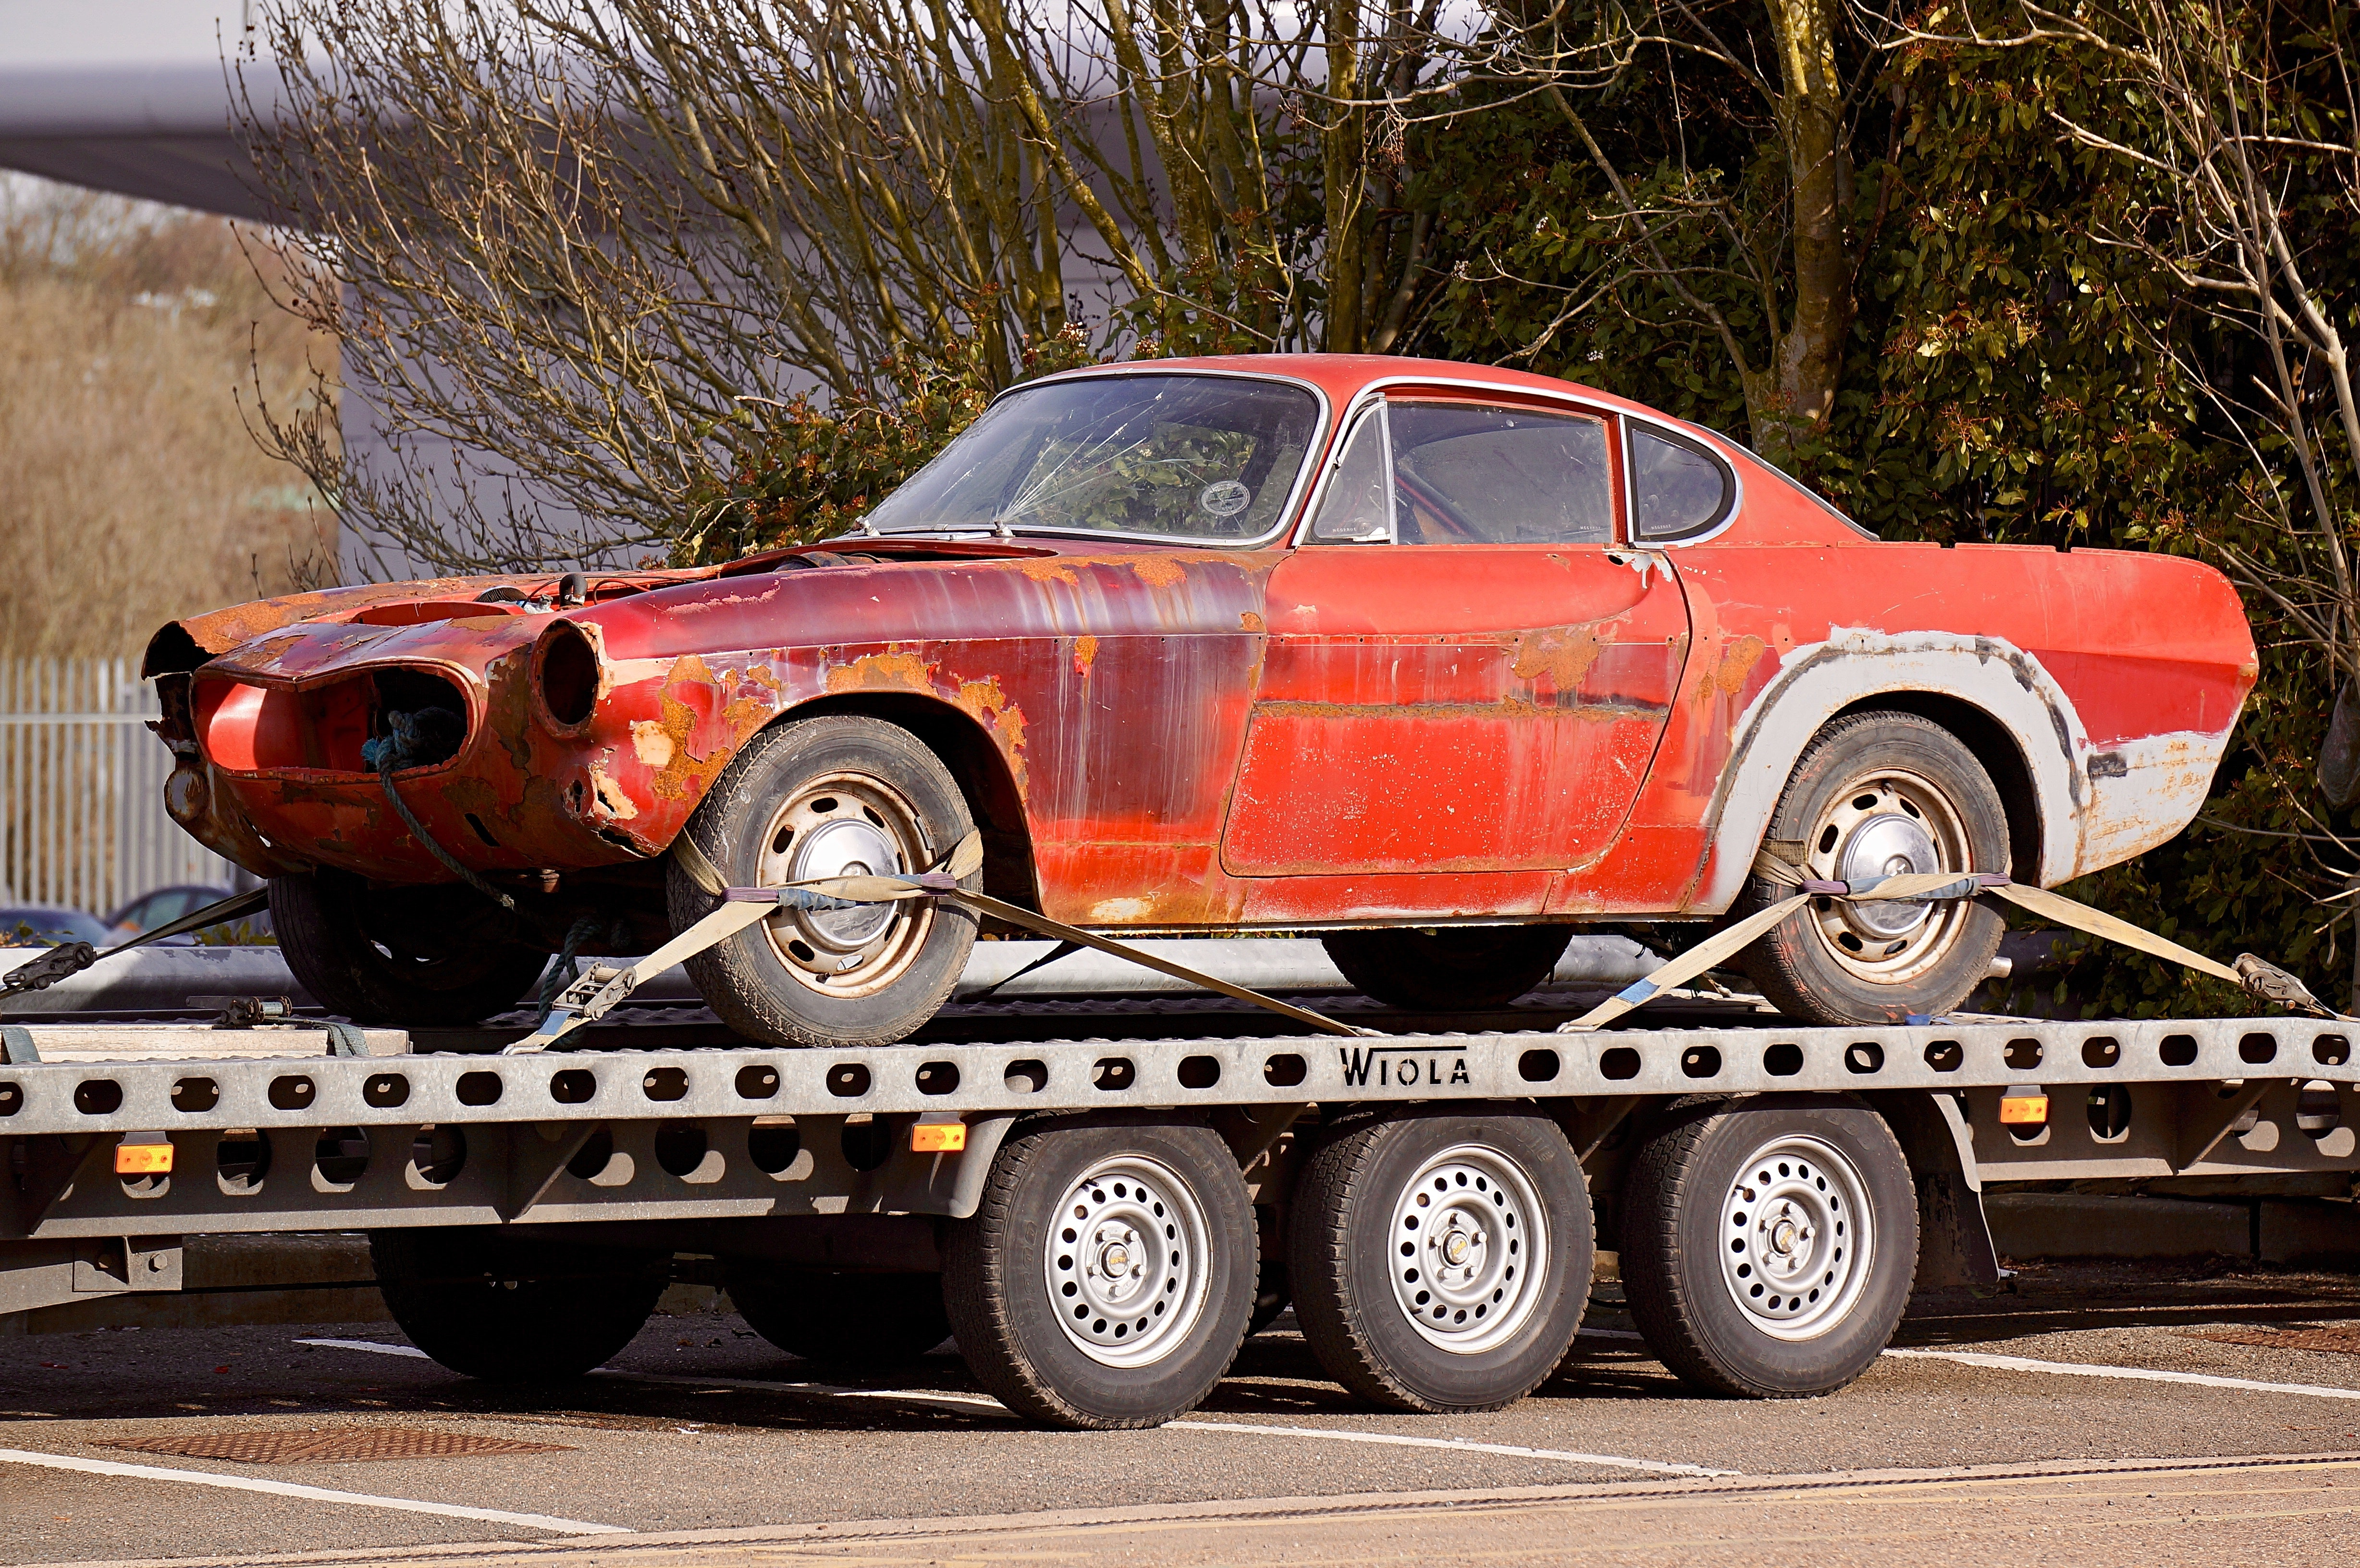 Red Coupe on Flatbed Trailer, Trailer, Retro, Road, Rough, HQ Photo